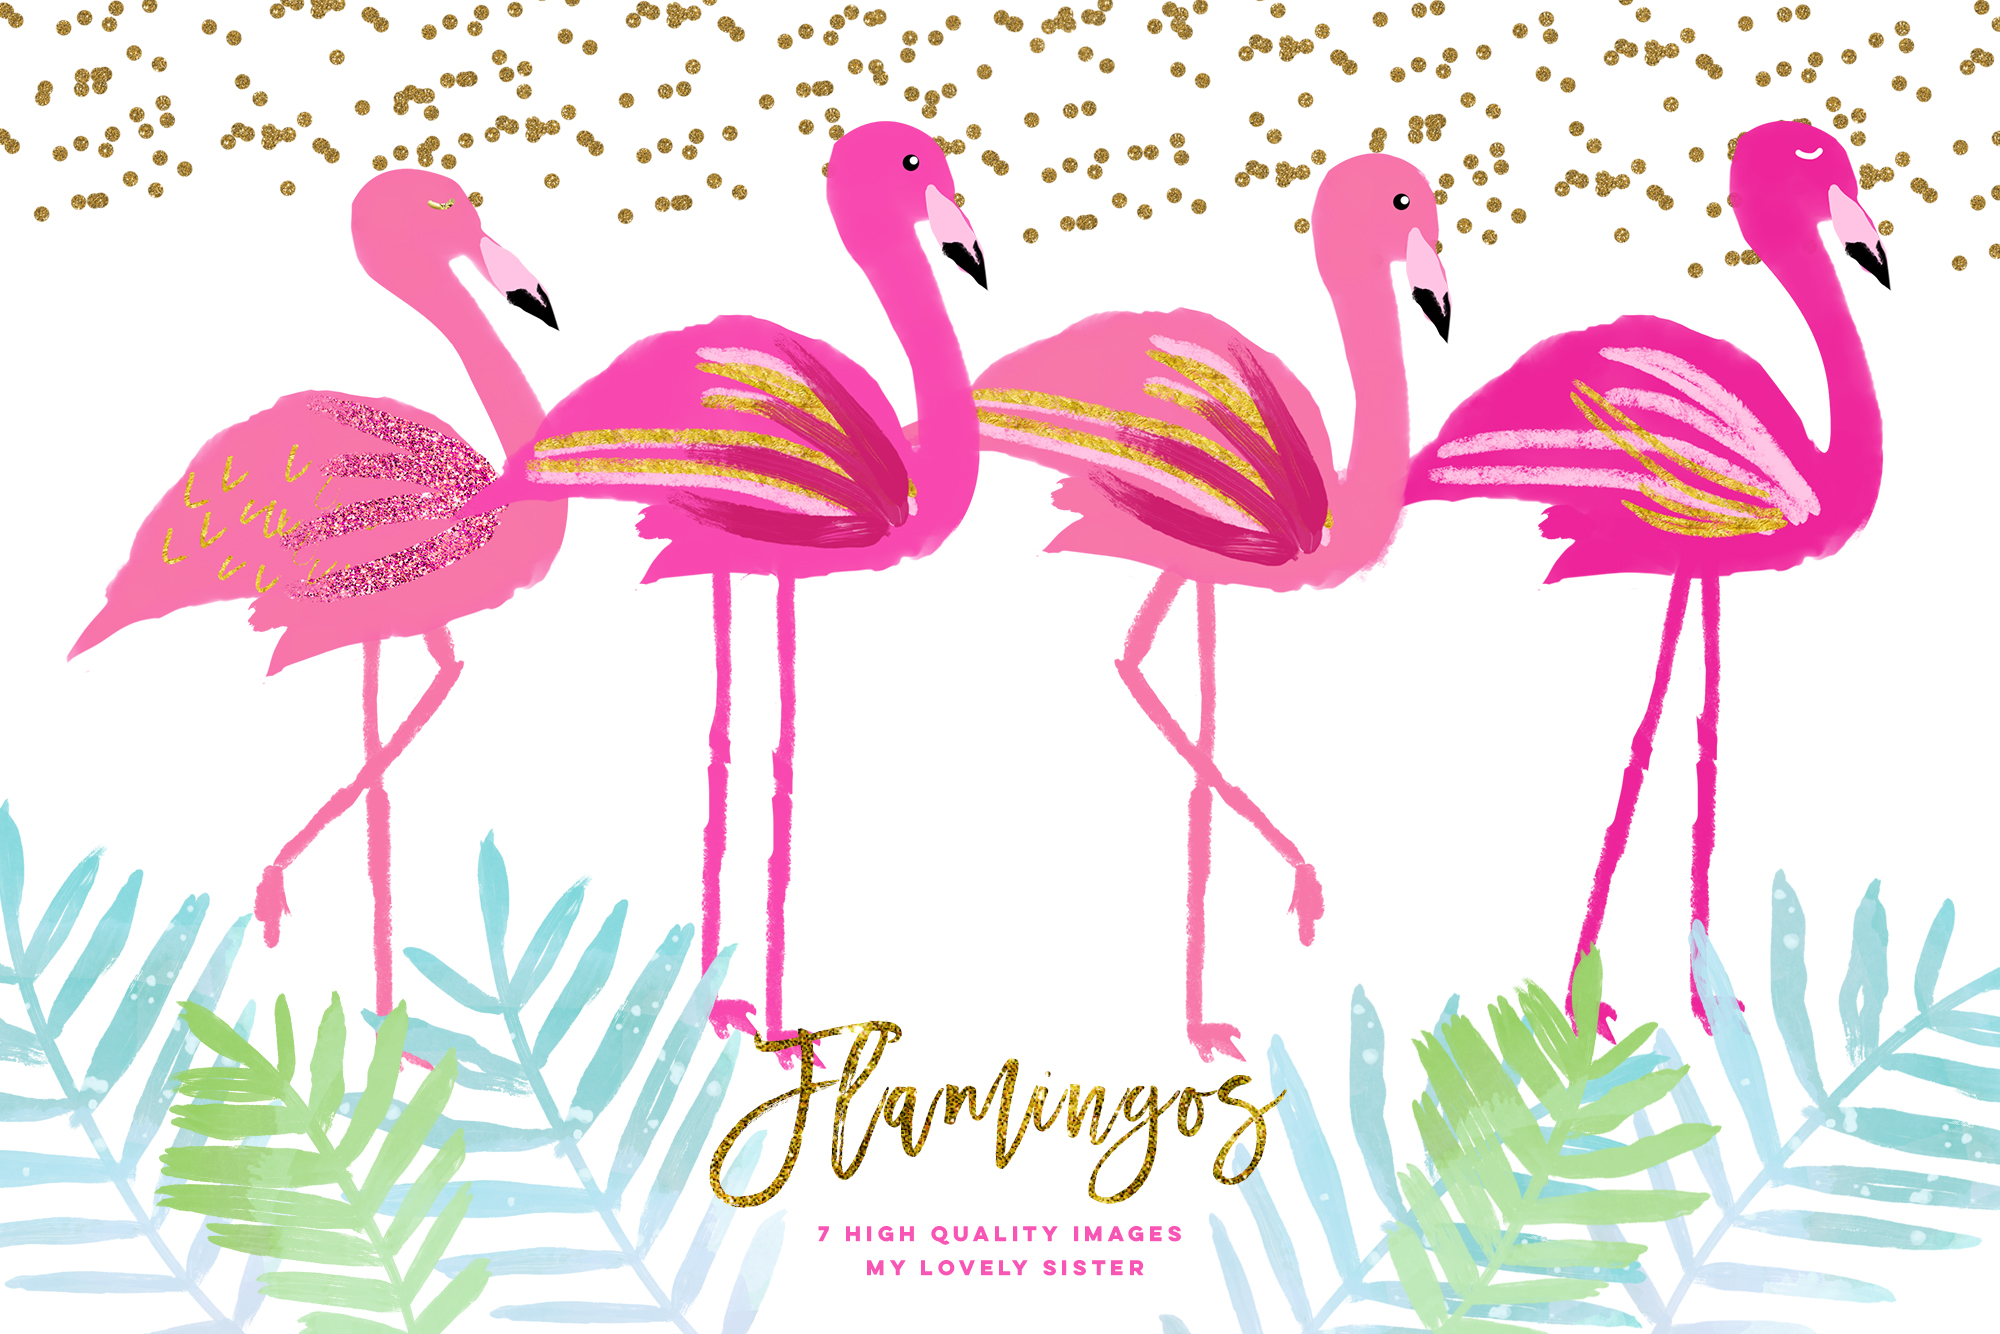 png freeuse Pink scrapbooking cupcake toppers. Flamingo clipart